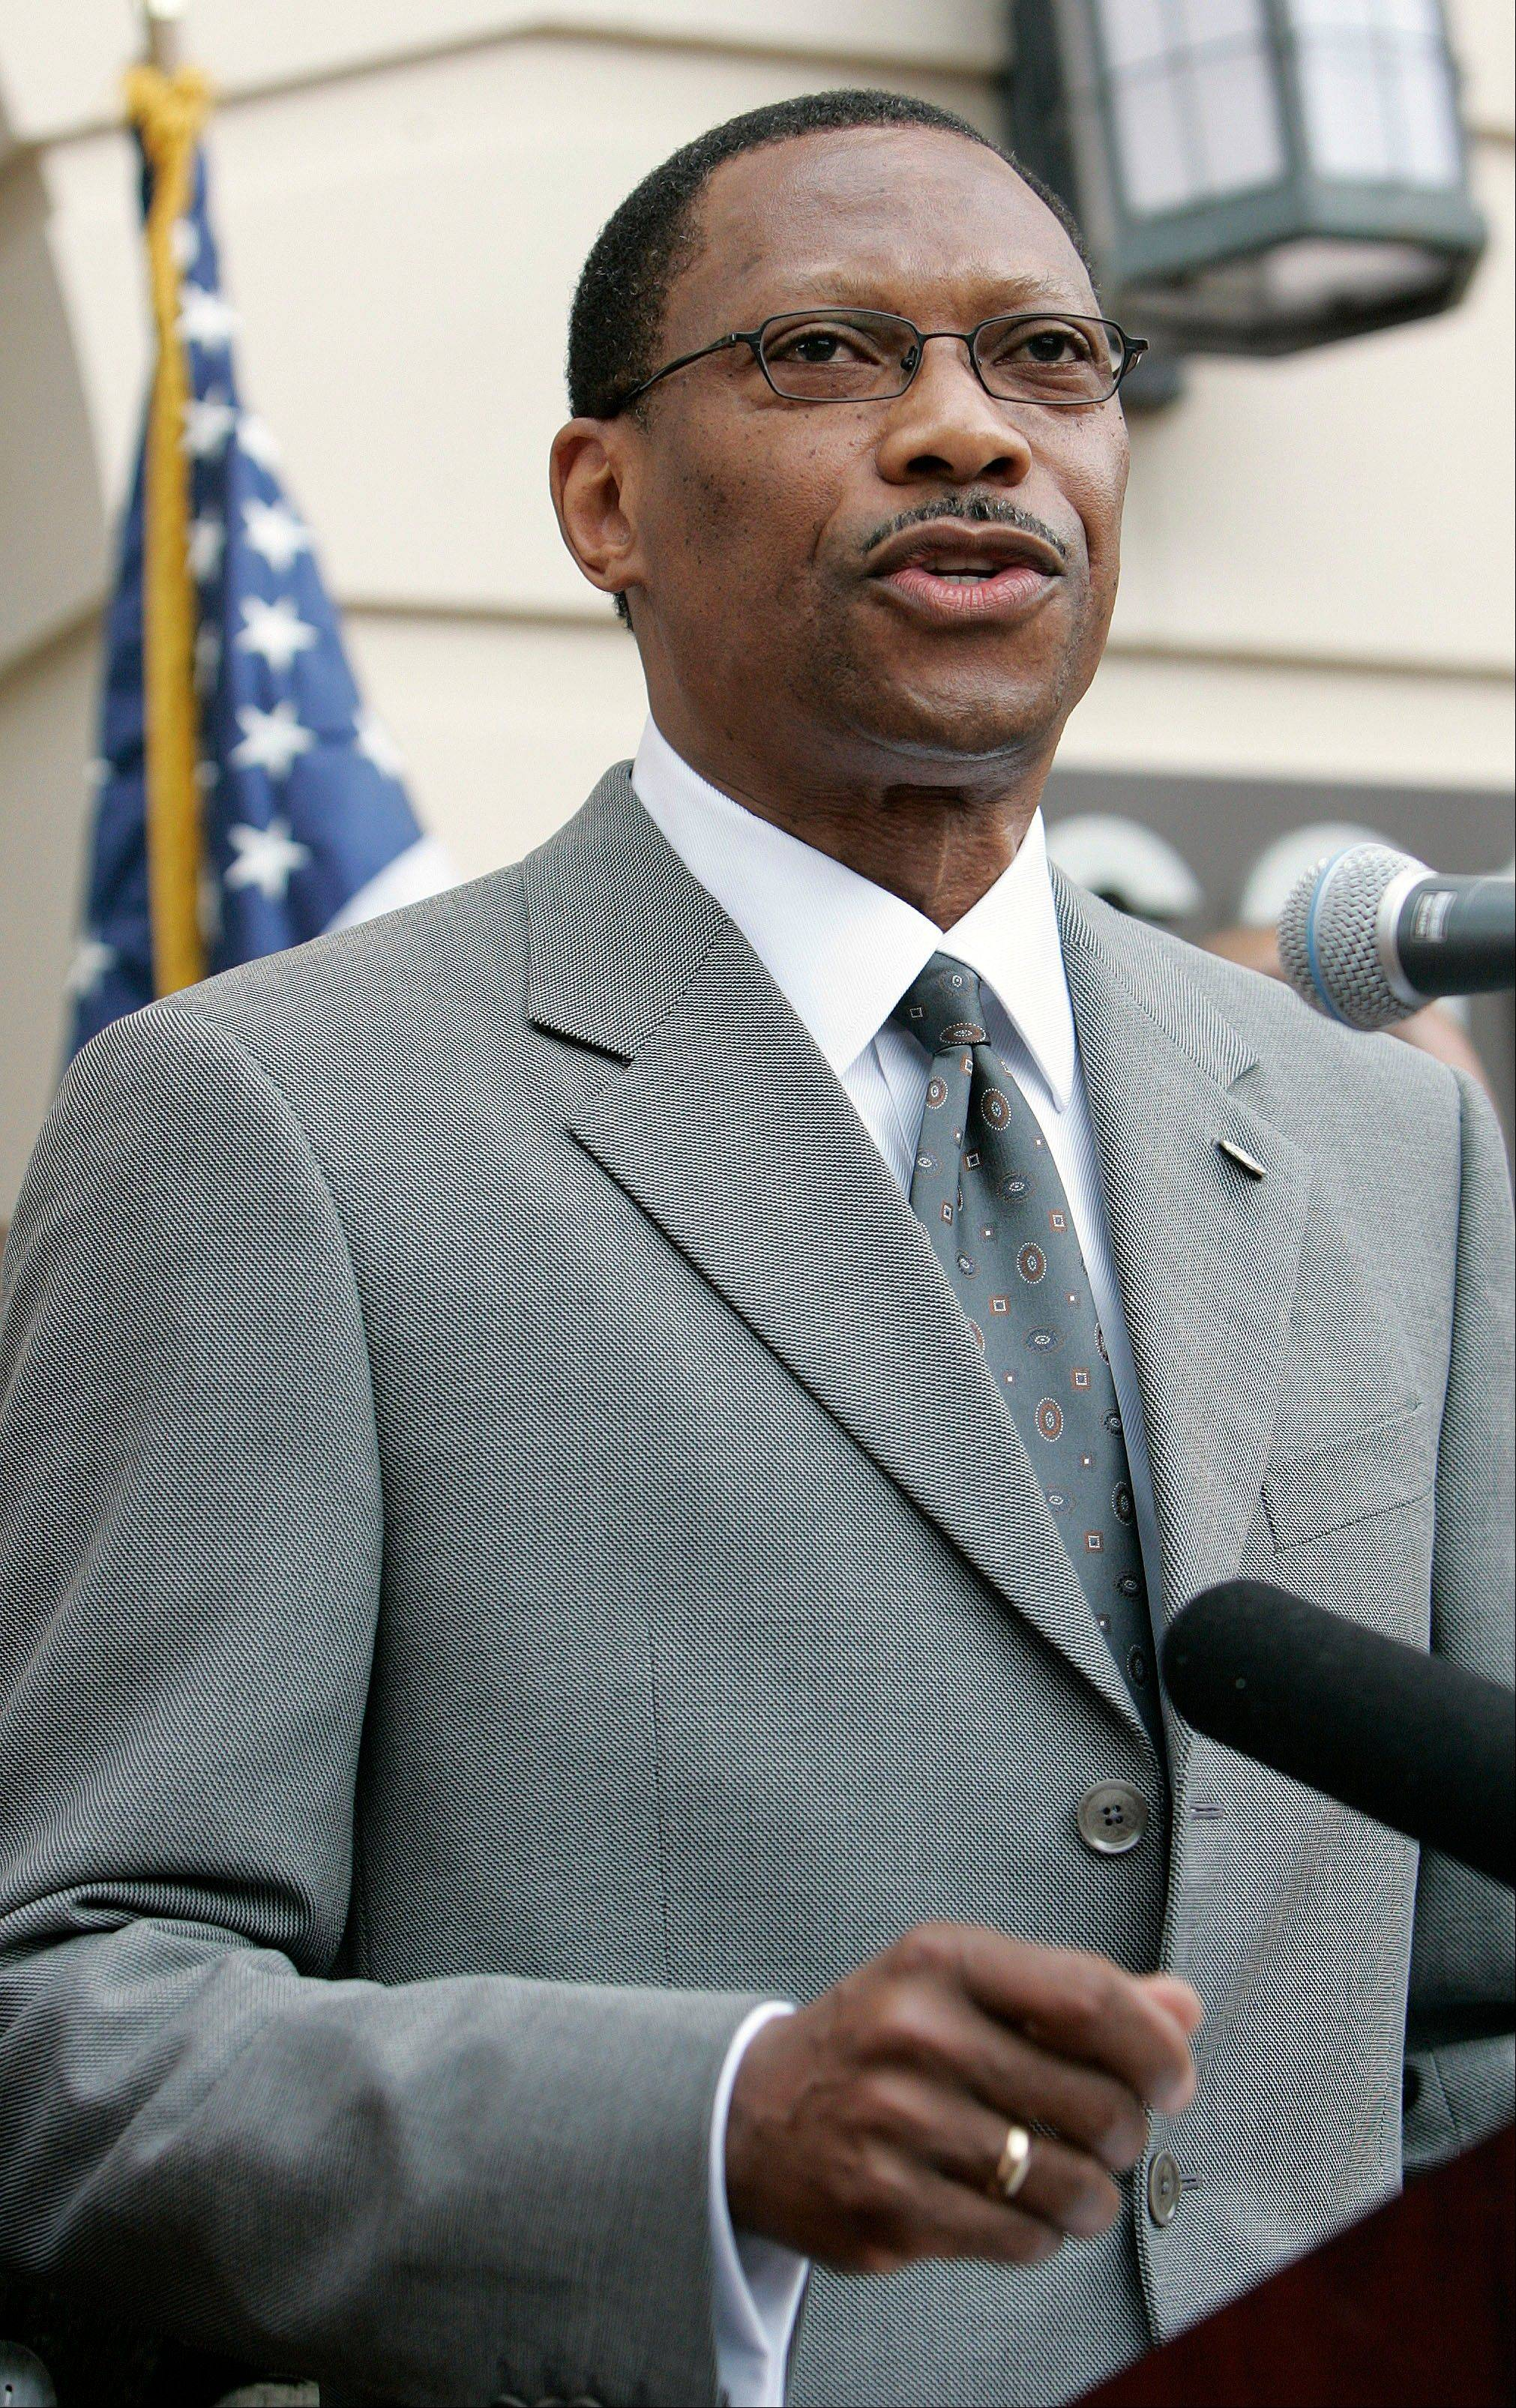 James Ammons, President of Florida A & M University, resigned Wednesday, July 11, 2012, the same day parents of a drum major who died after being hazed added the university to a wrongful-death lawsuit. Robert Champion died in November 2011, after being beaten by fellow band members during a hazing ritual in Orlando.